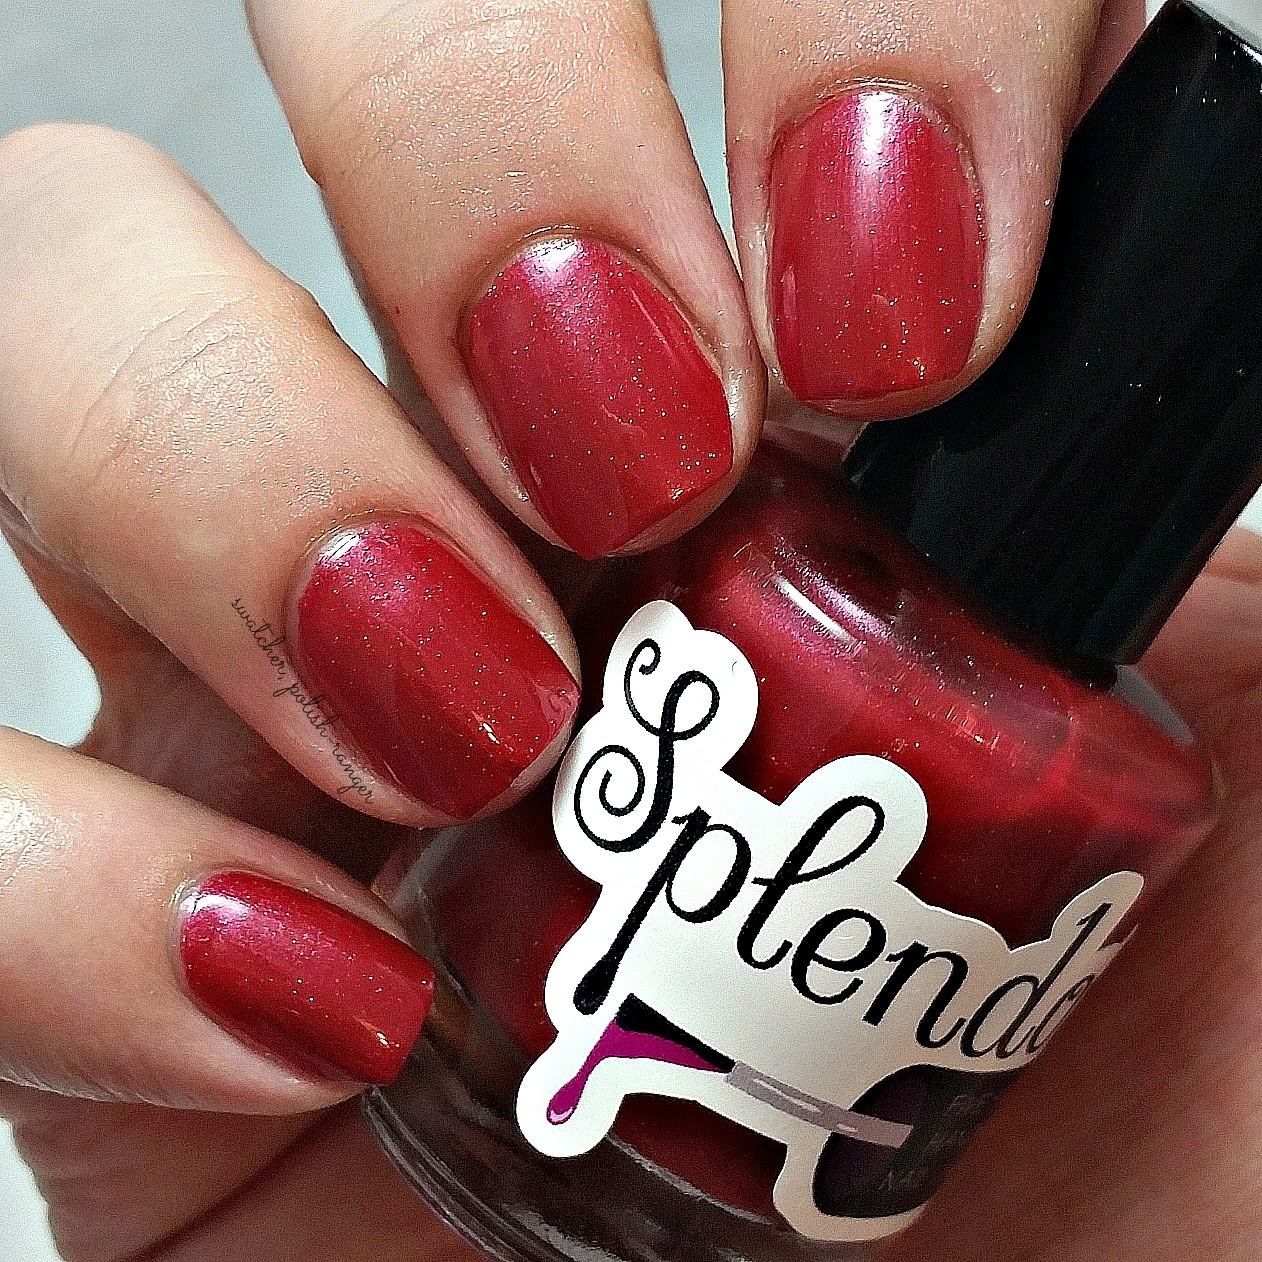 swatcher, polish-ranger | Splendor Nail Lacquer Bing swatch